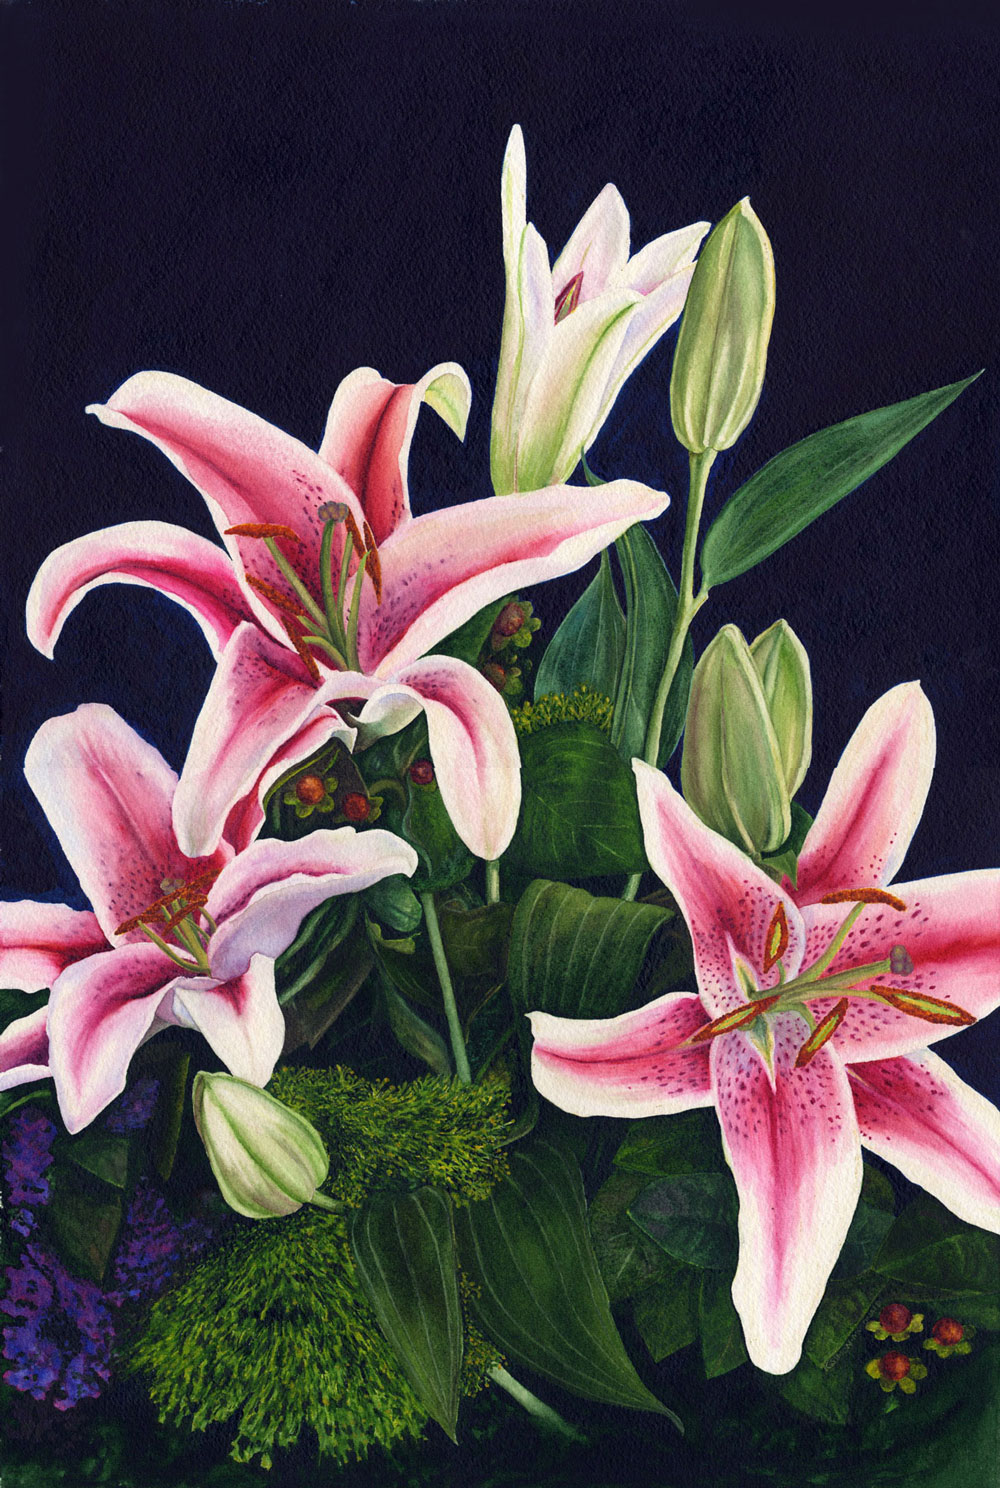 Julianna's Stargazers by Kathy Simon McDonald, $700CCC